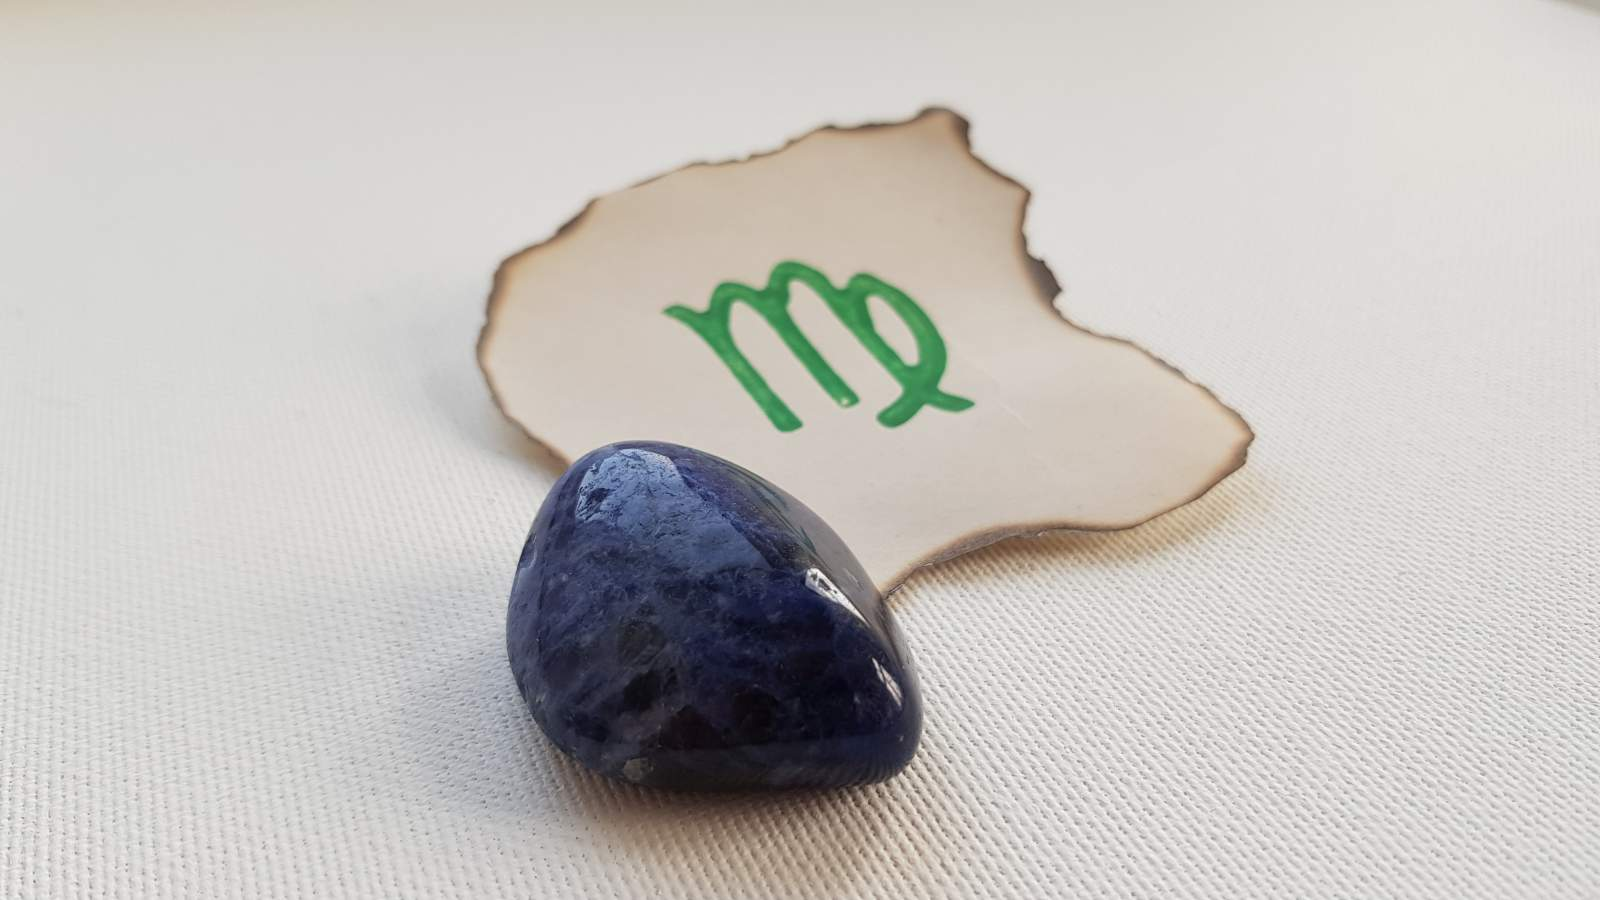 Gemstone - Virgo 2019 Love Horoscope